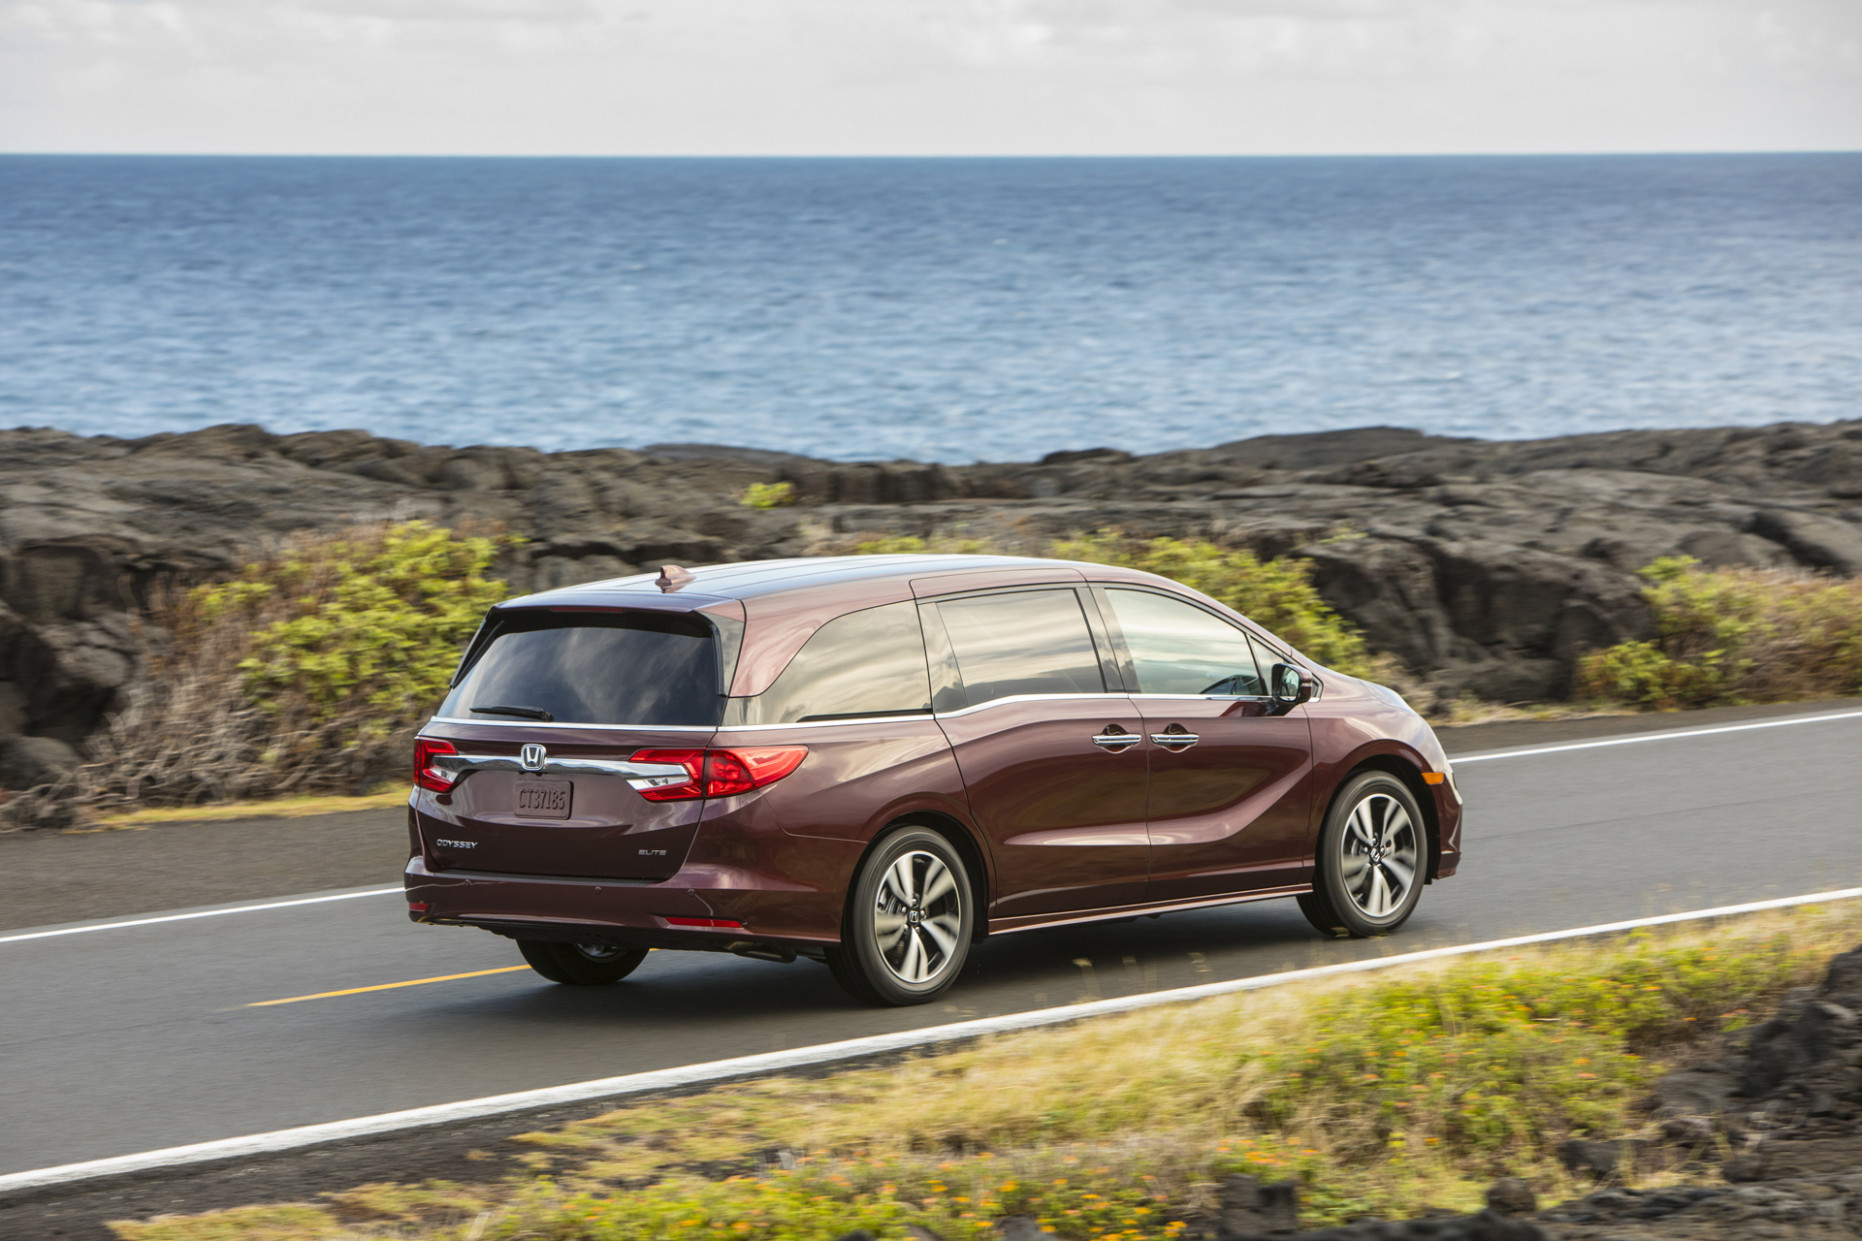 8 Honda Odyssey Review, Ratings, Specs, Prices, and Photos ..